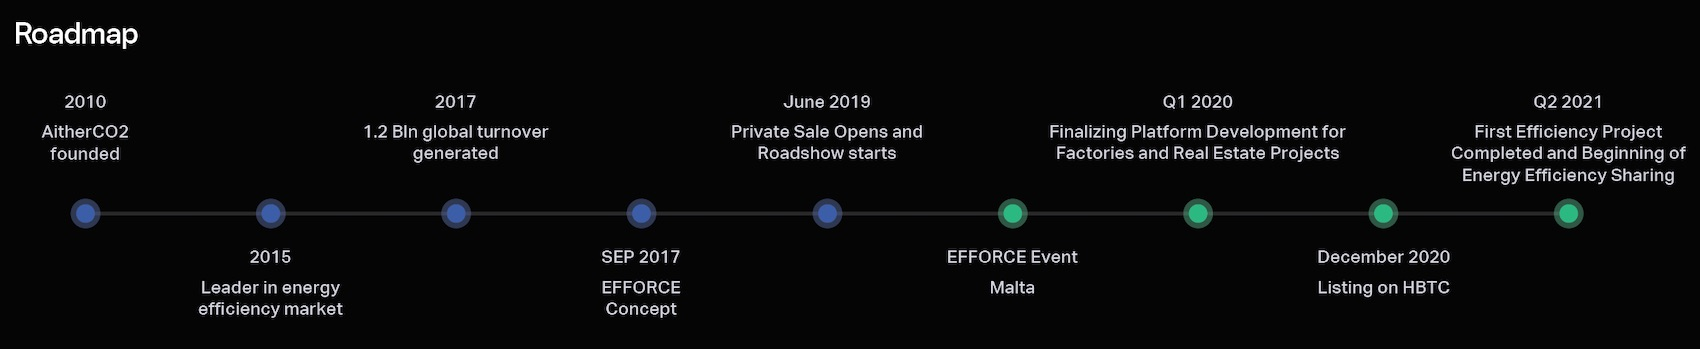 Efforce roadmap 2020